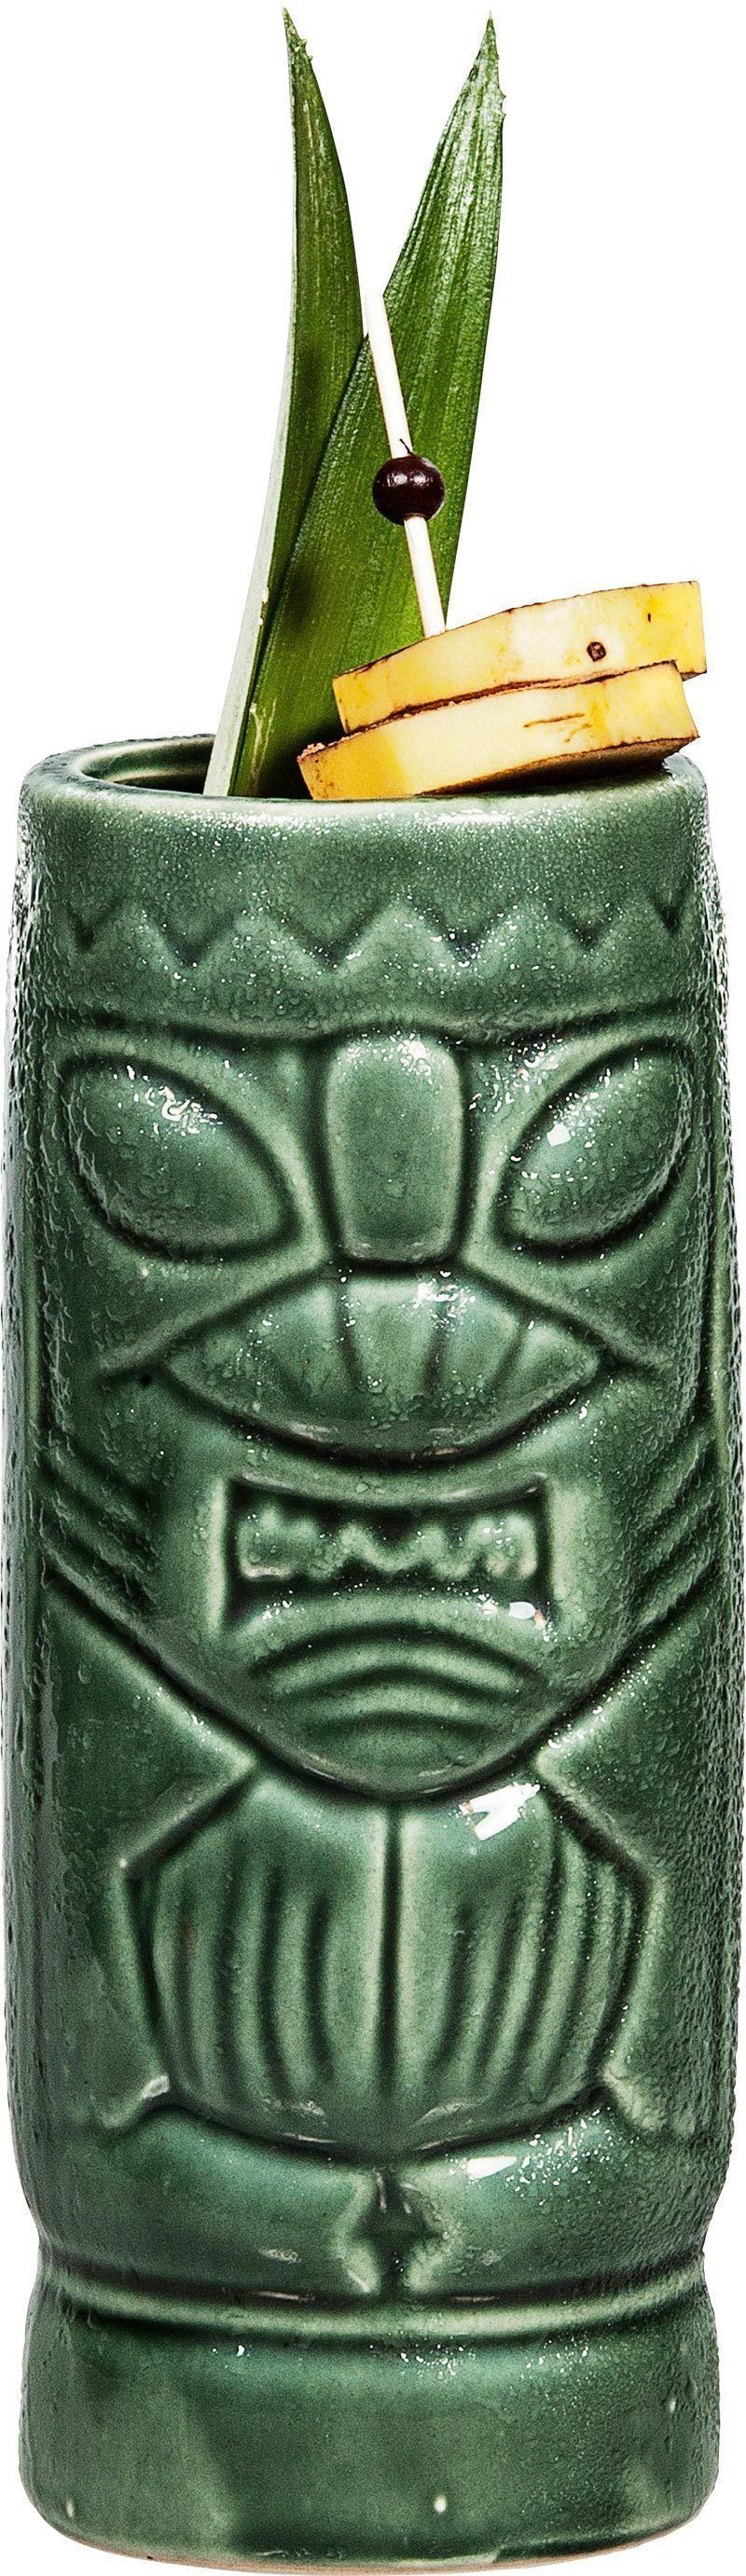 How to Make the Tiki Master